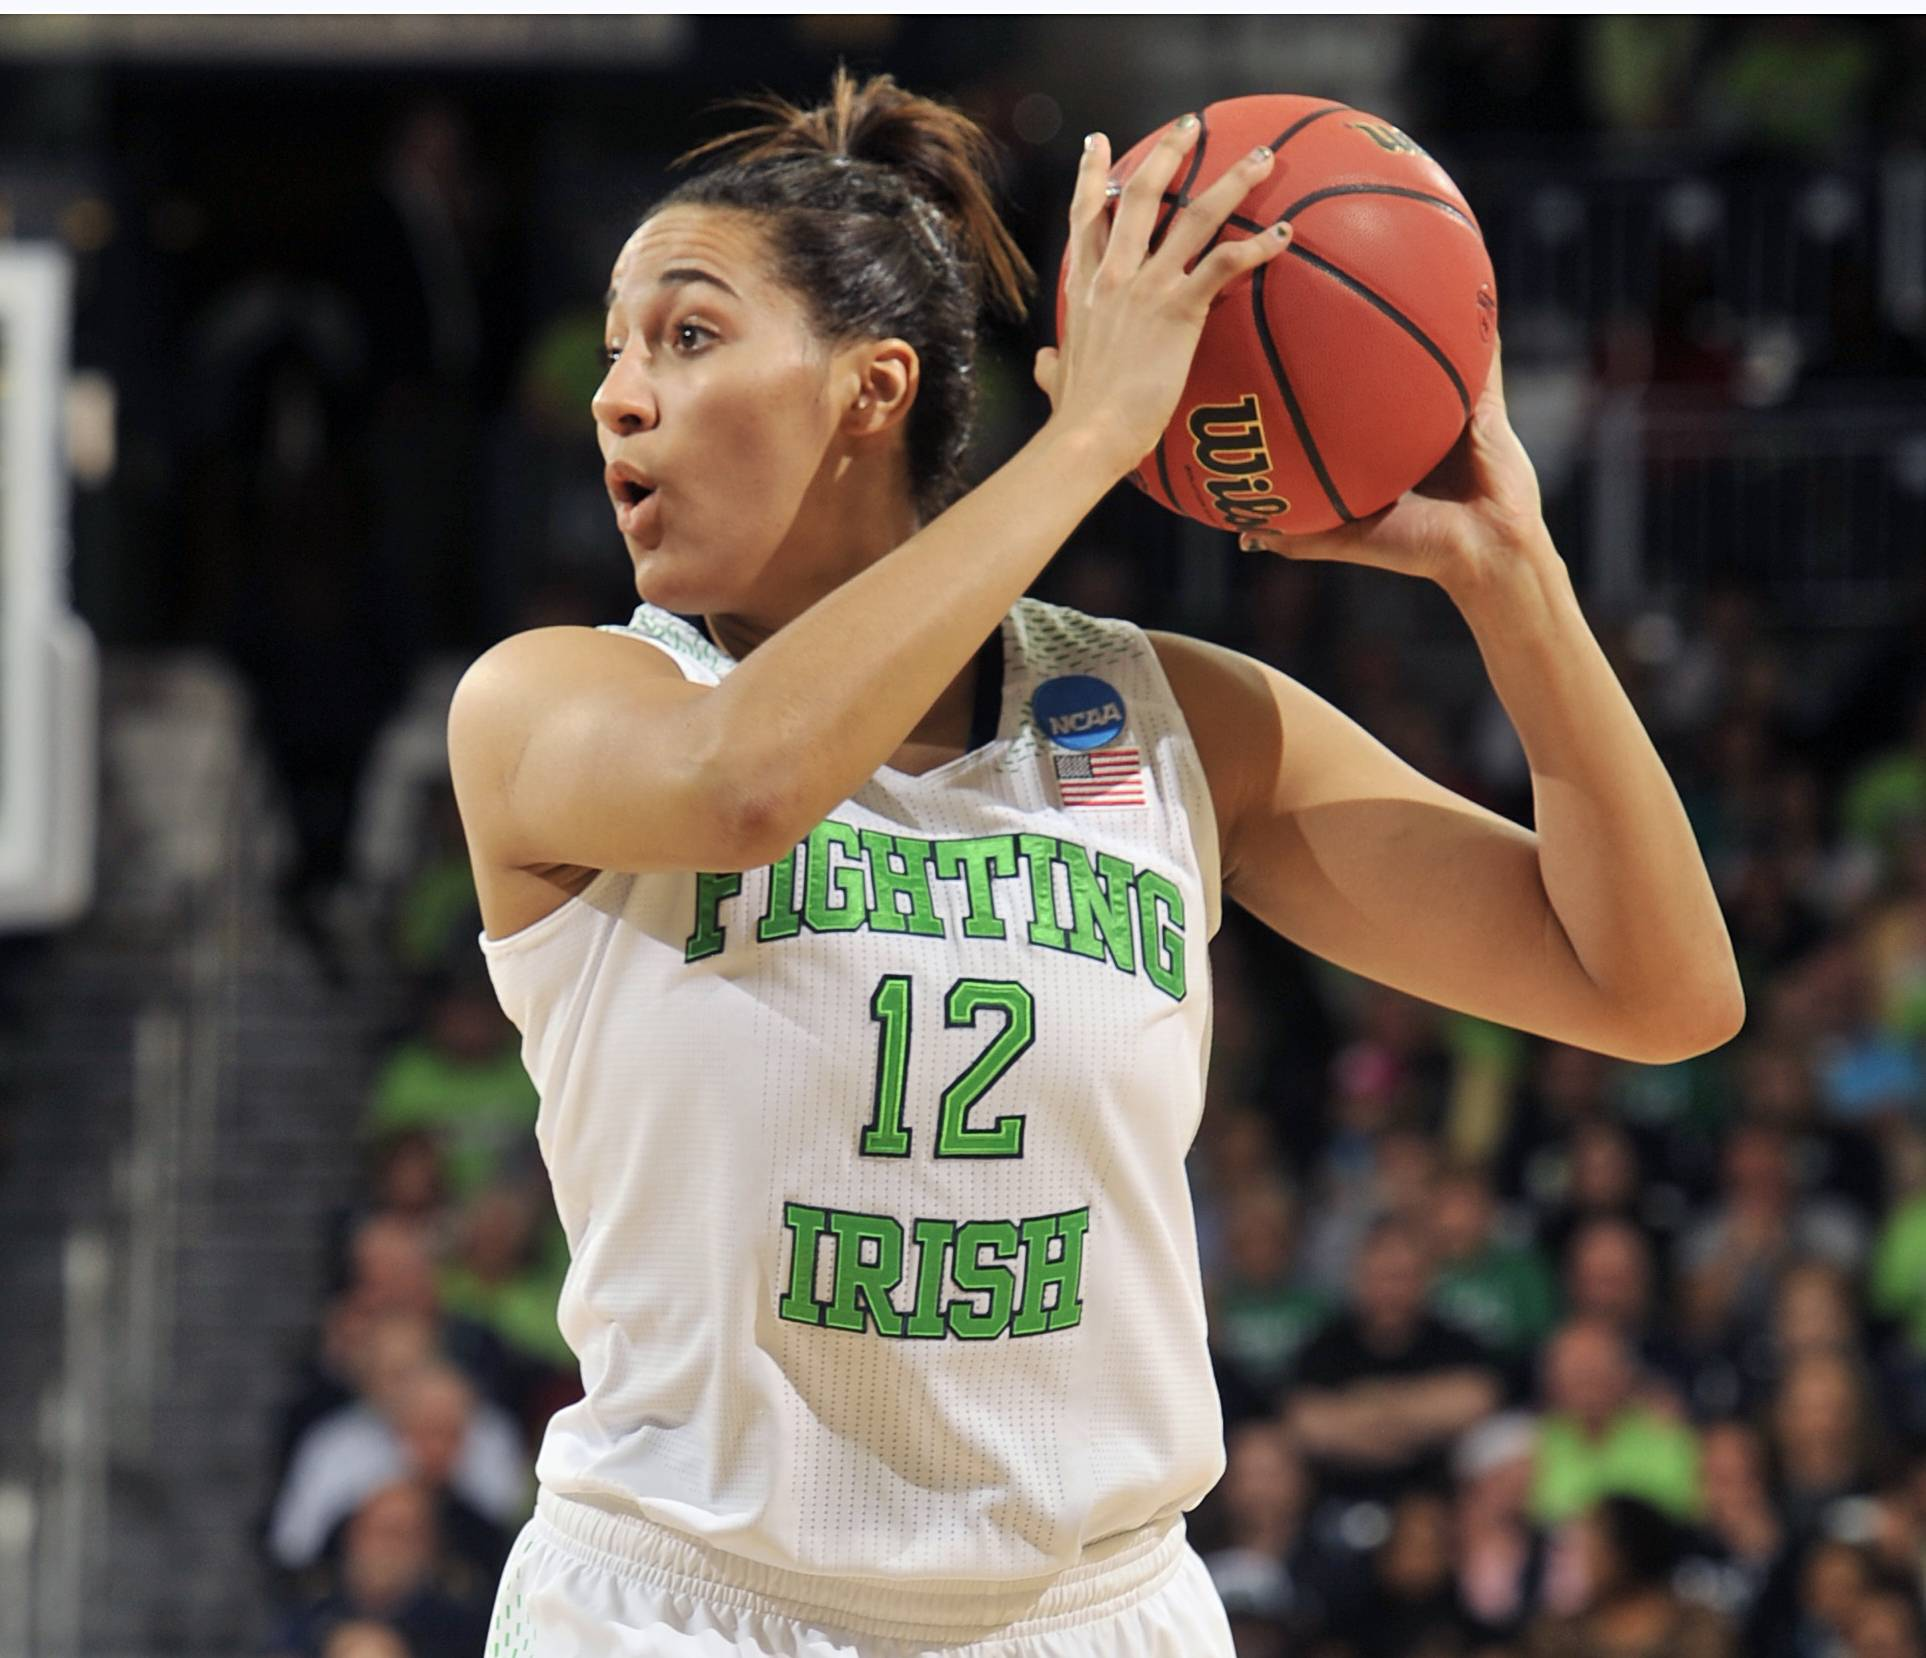 Notre Dame coach Muffet McGraw believes freshman Taya Reimer is ready for her big opportunity with third-team All-American Natalie Achonwa out for the Final Four.